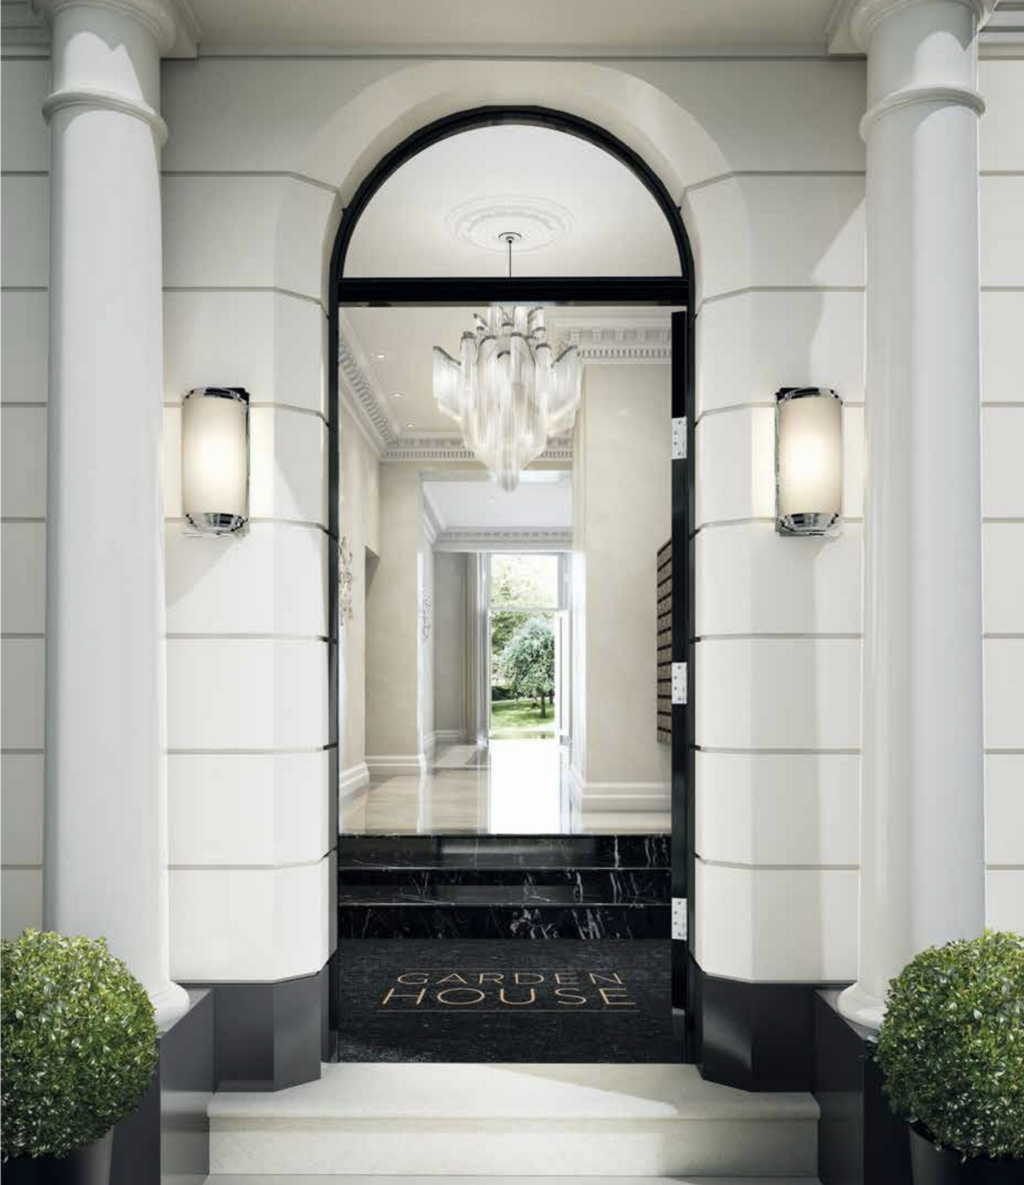 1 Bedroom Apartments In London: Property For Sale Kensington Gardens Square, London, W2